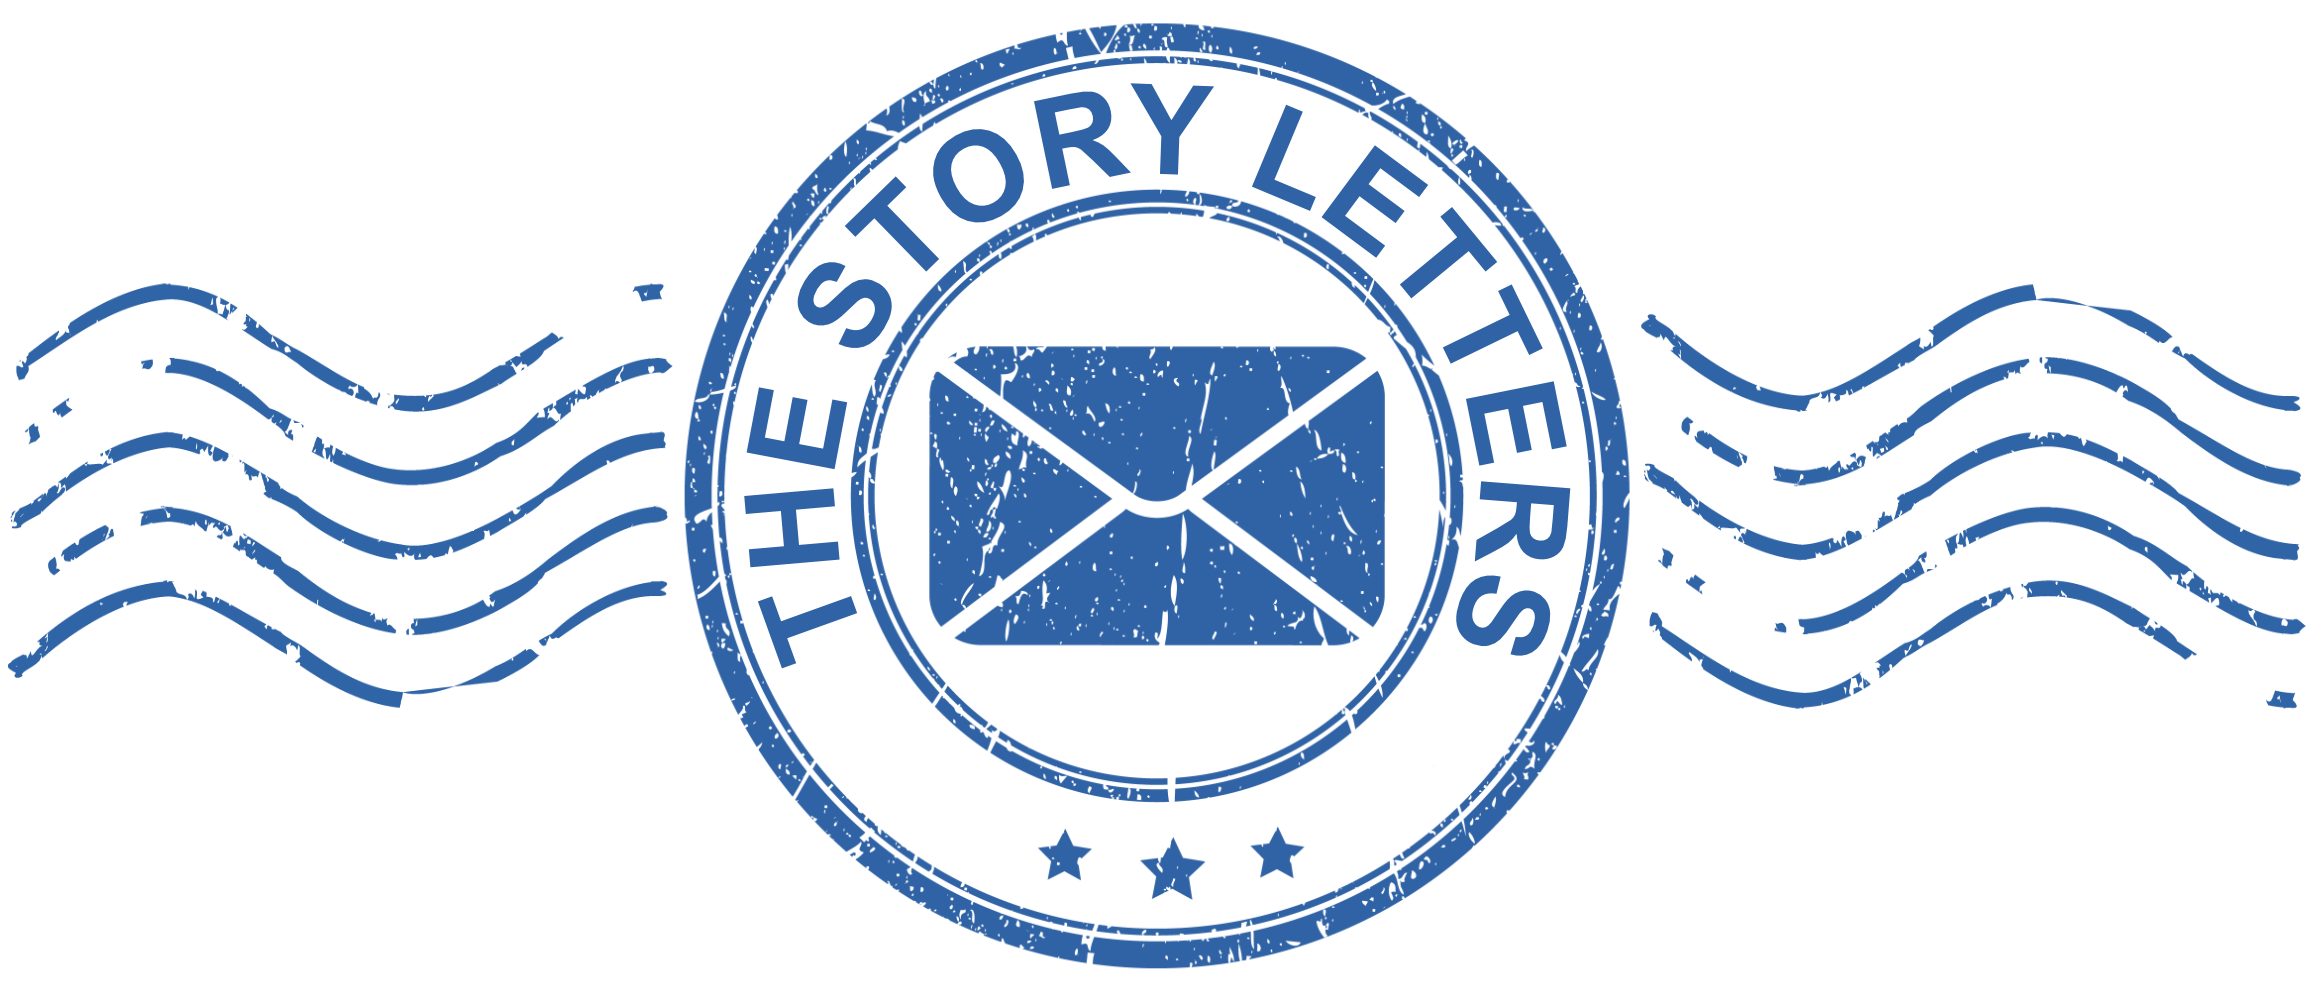 The Story Letters